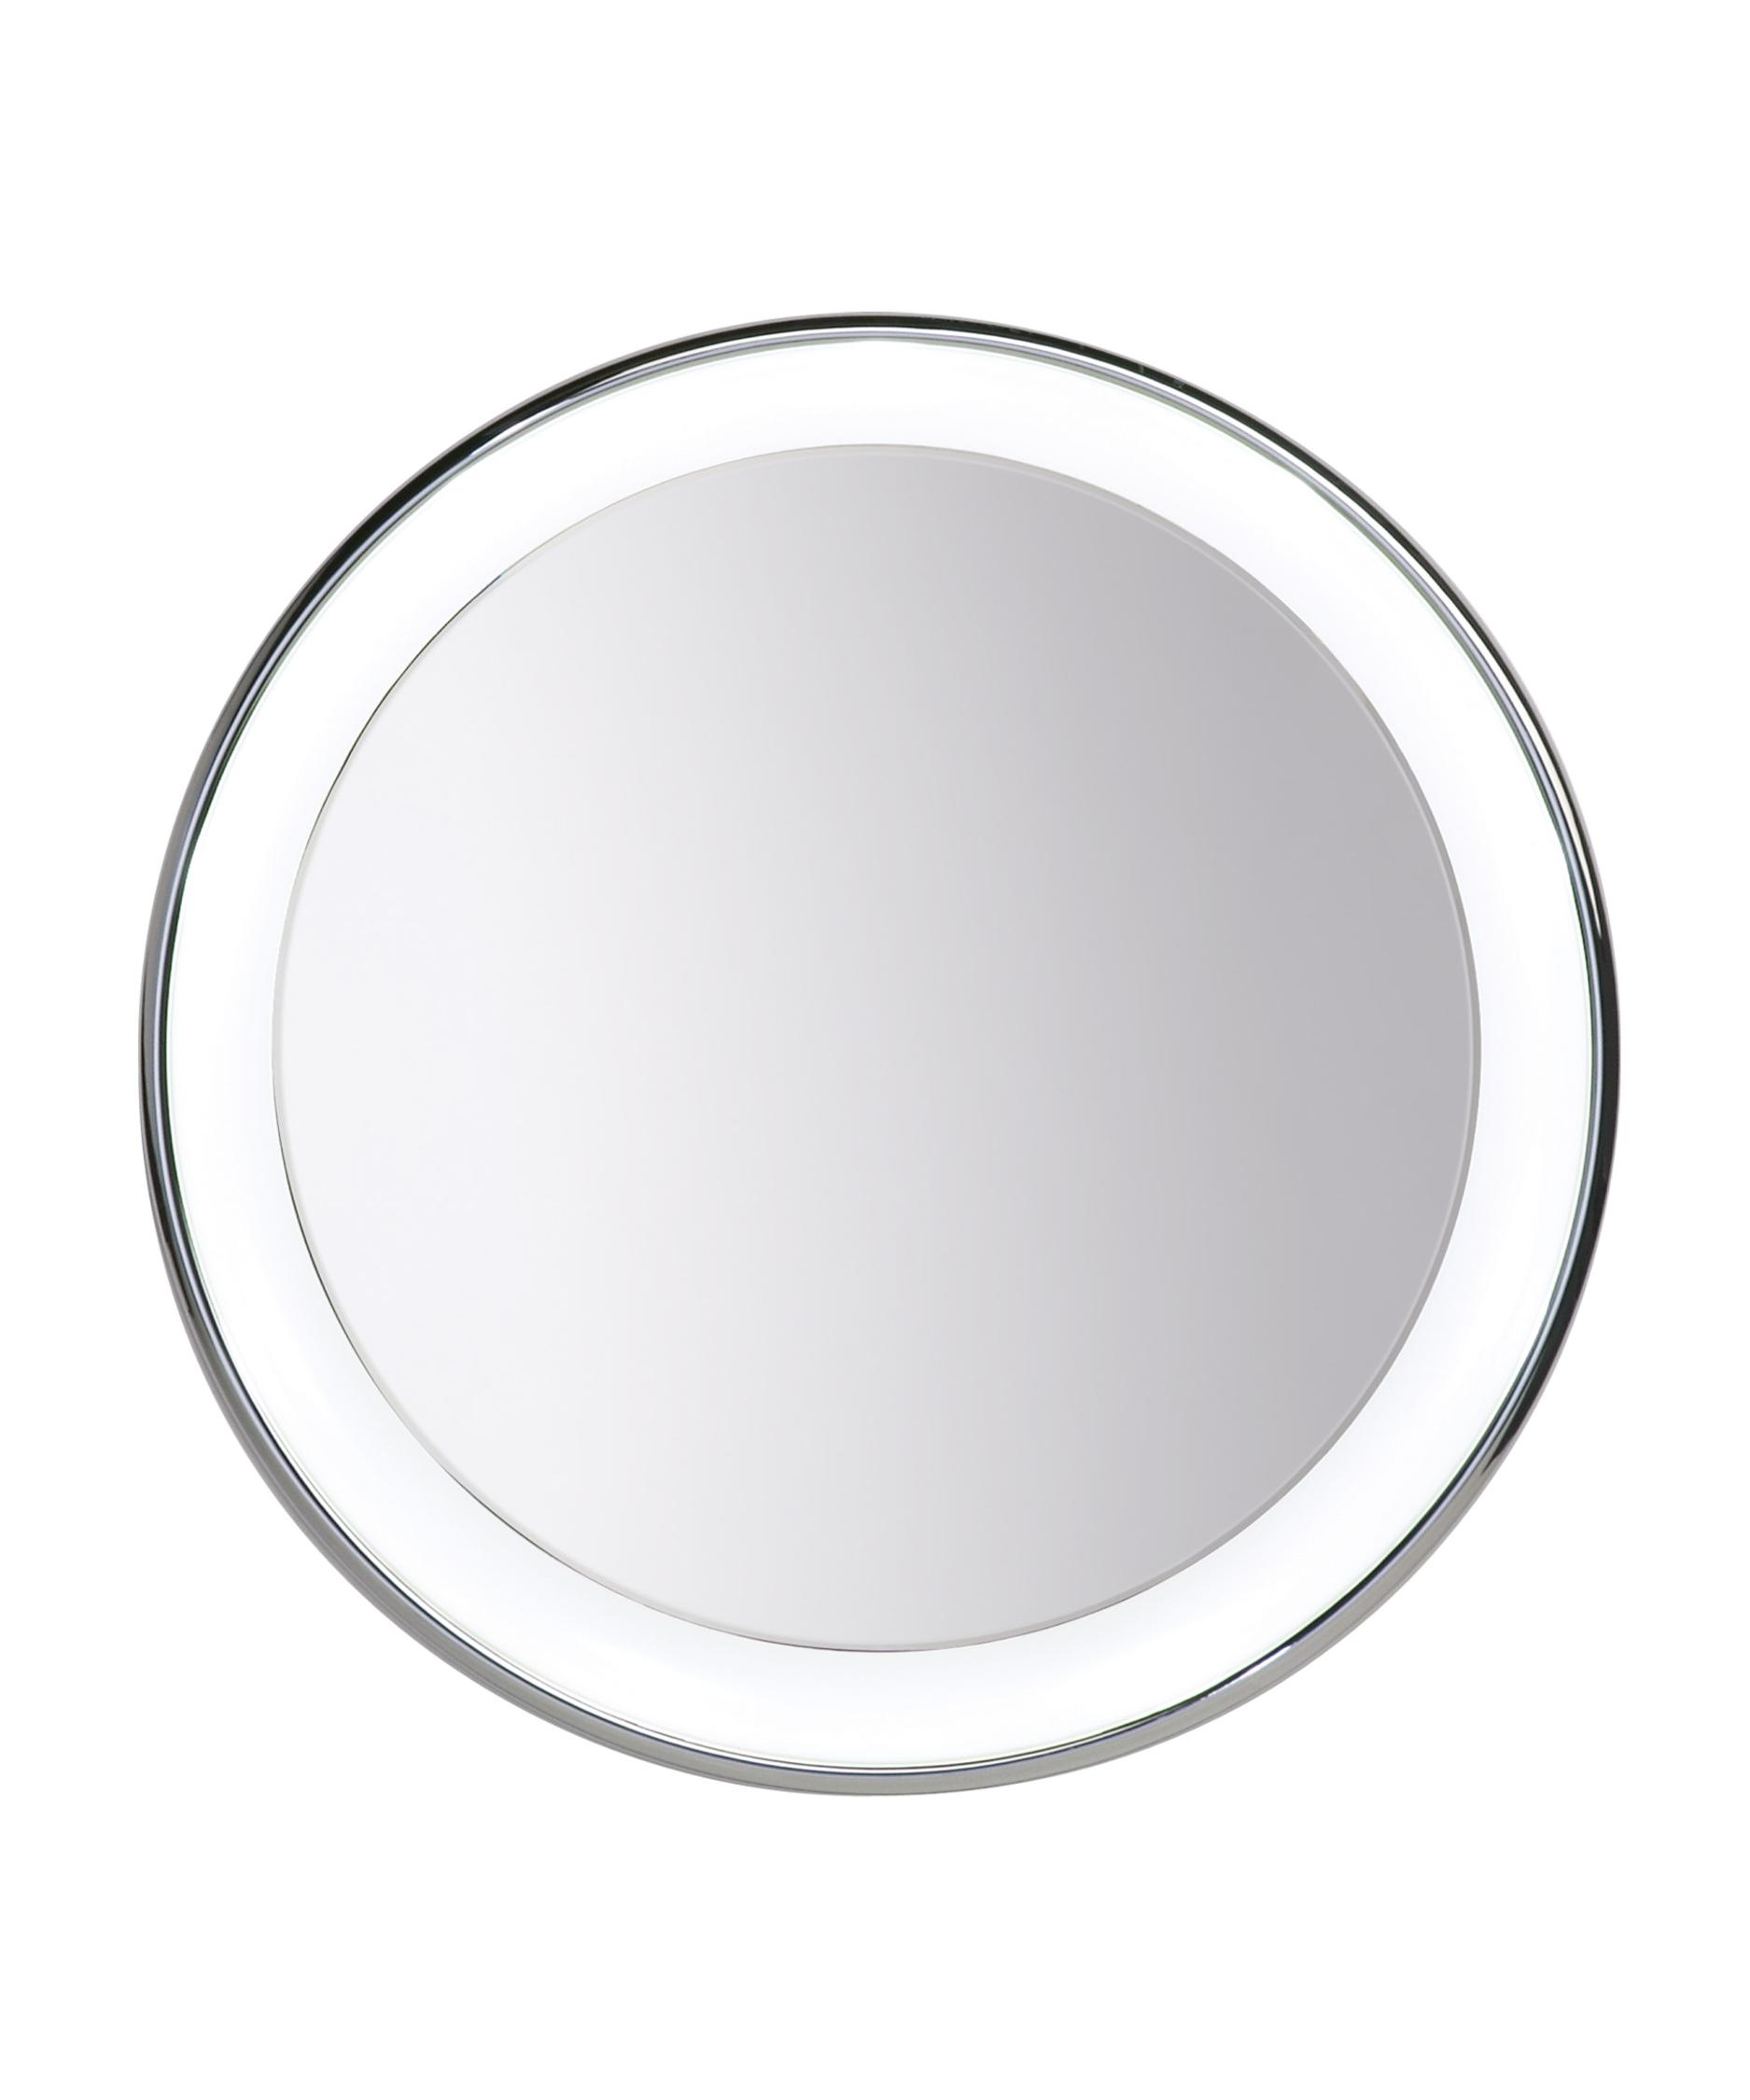 Tech Lighting 700bctigr Tigris 0 Inch Wall Mirror Capitol Inside Black Round Mirror (Image 15 of 15)